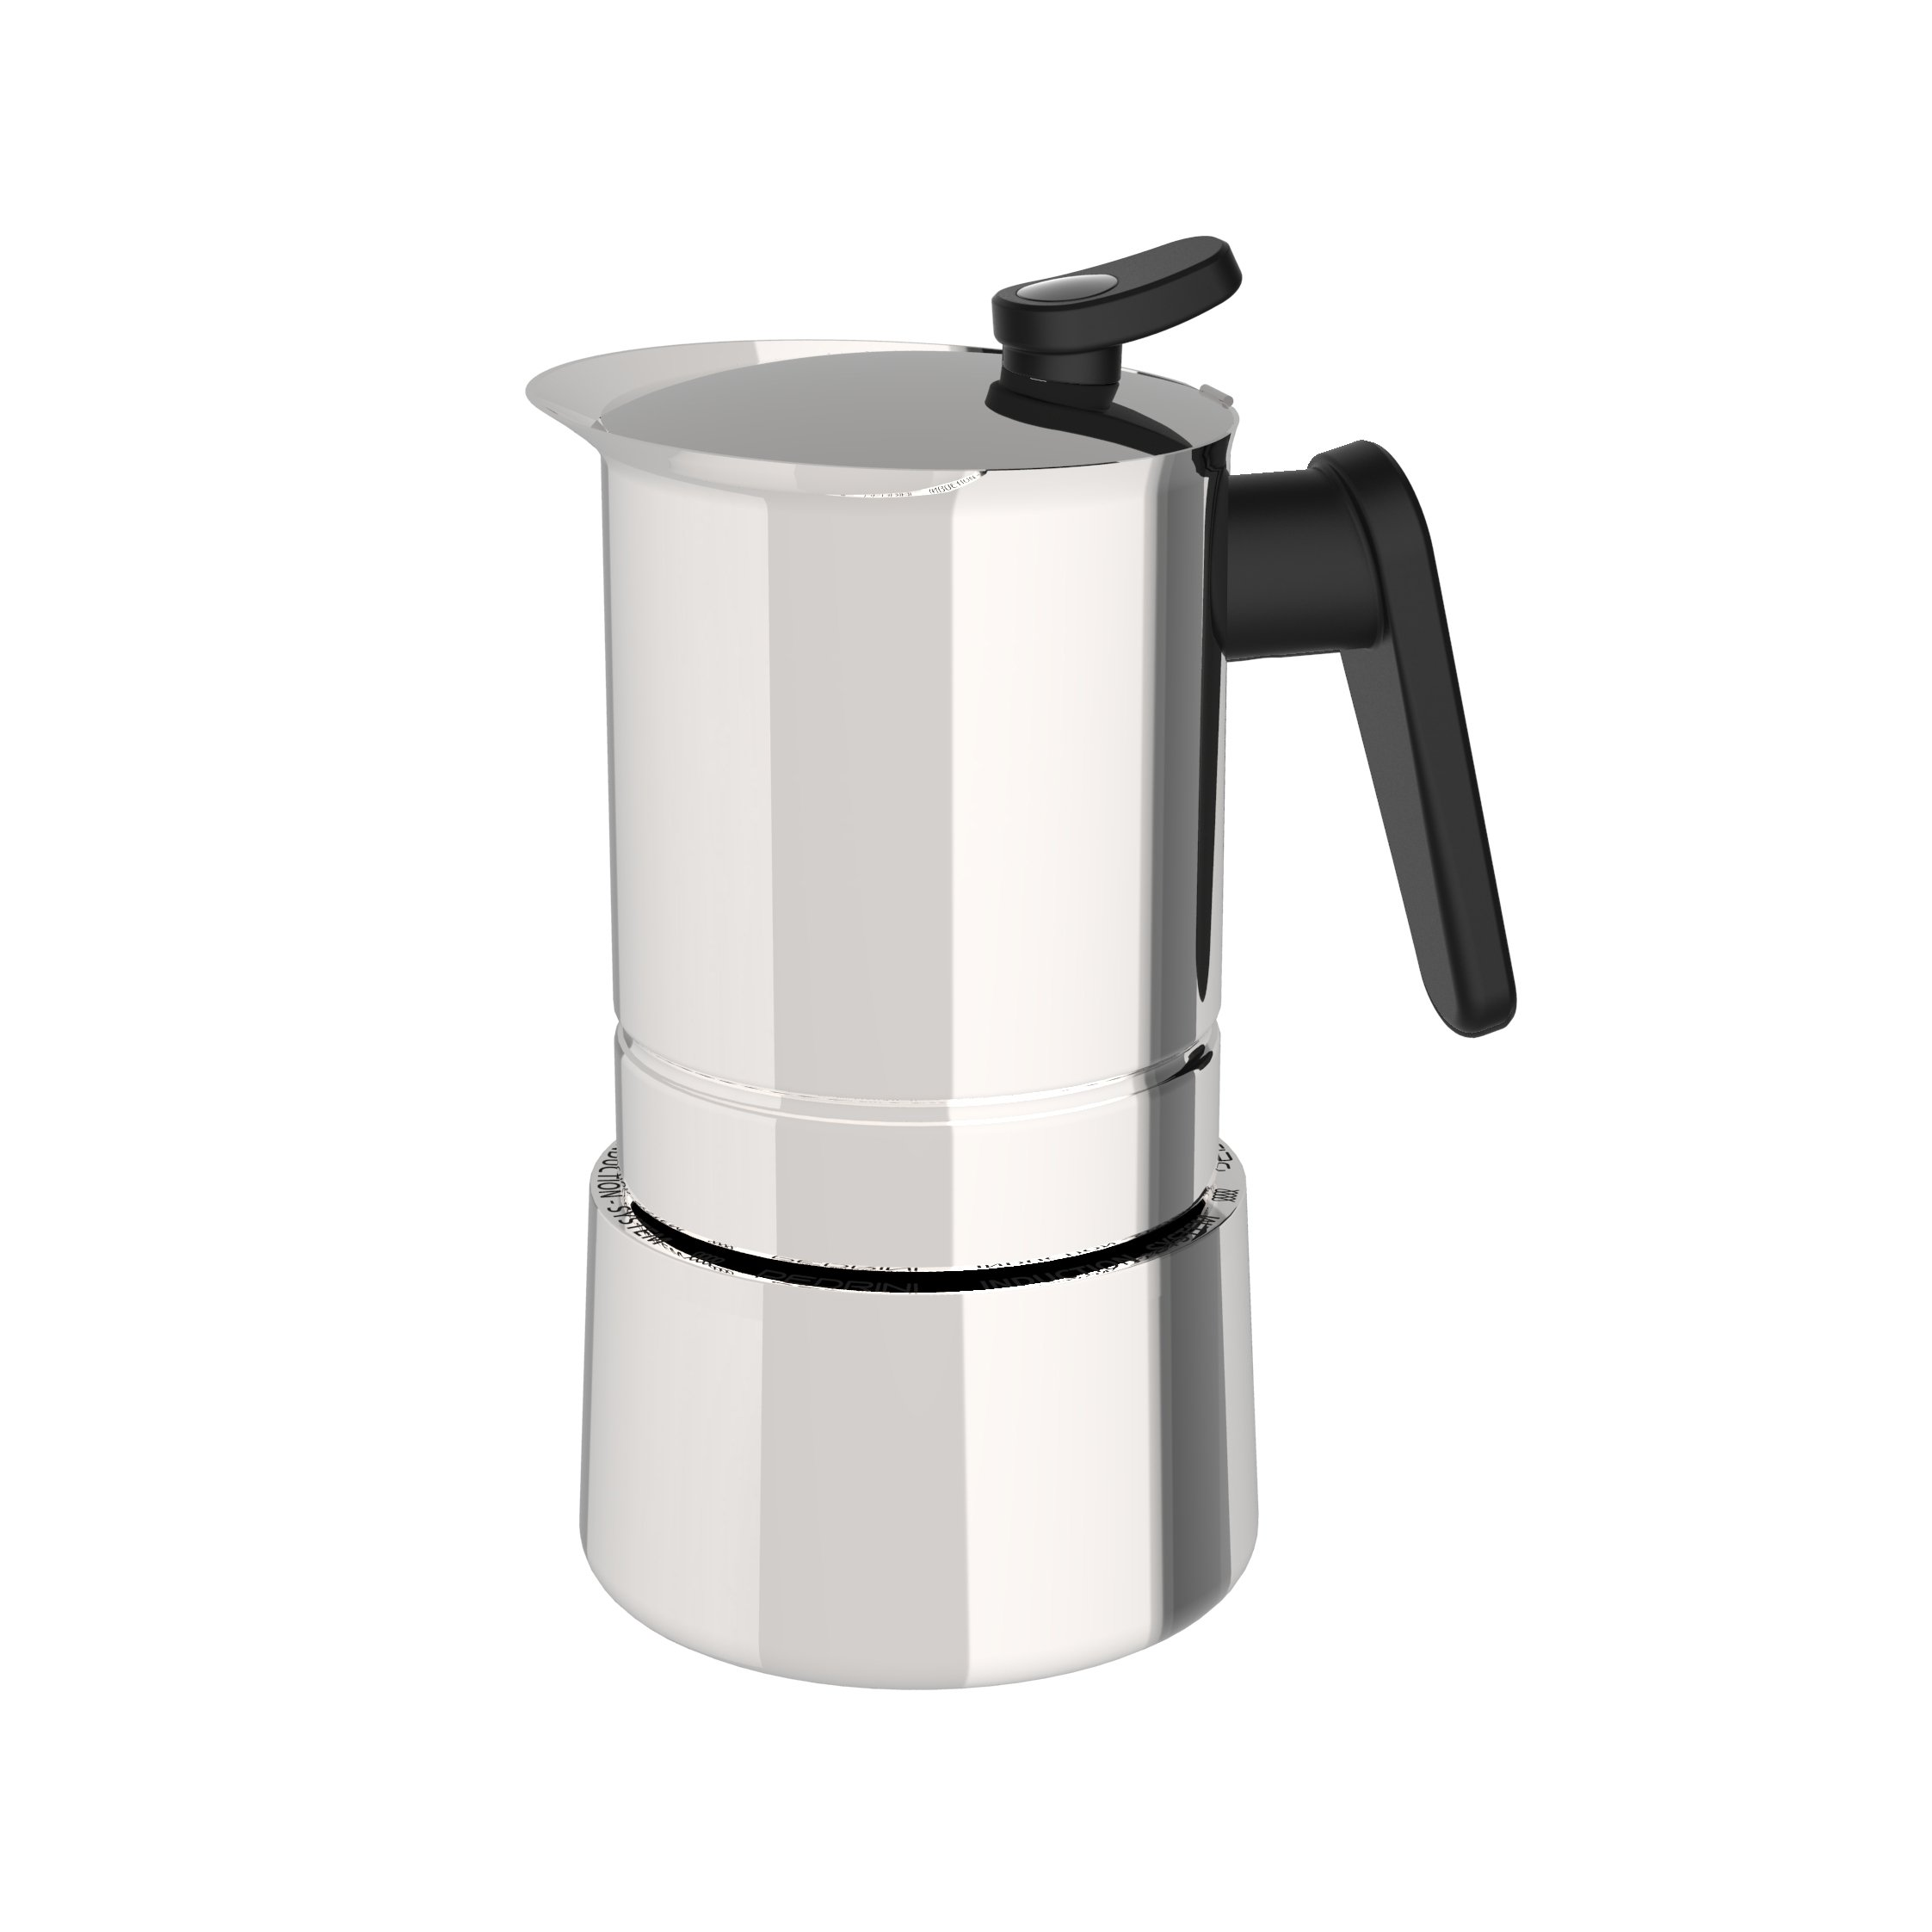 Pedrini 02CF039: 10 Cups Espresso Coffee Pot, Steel